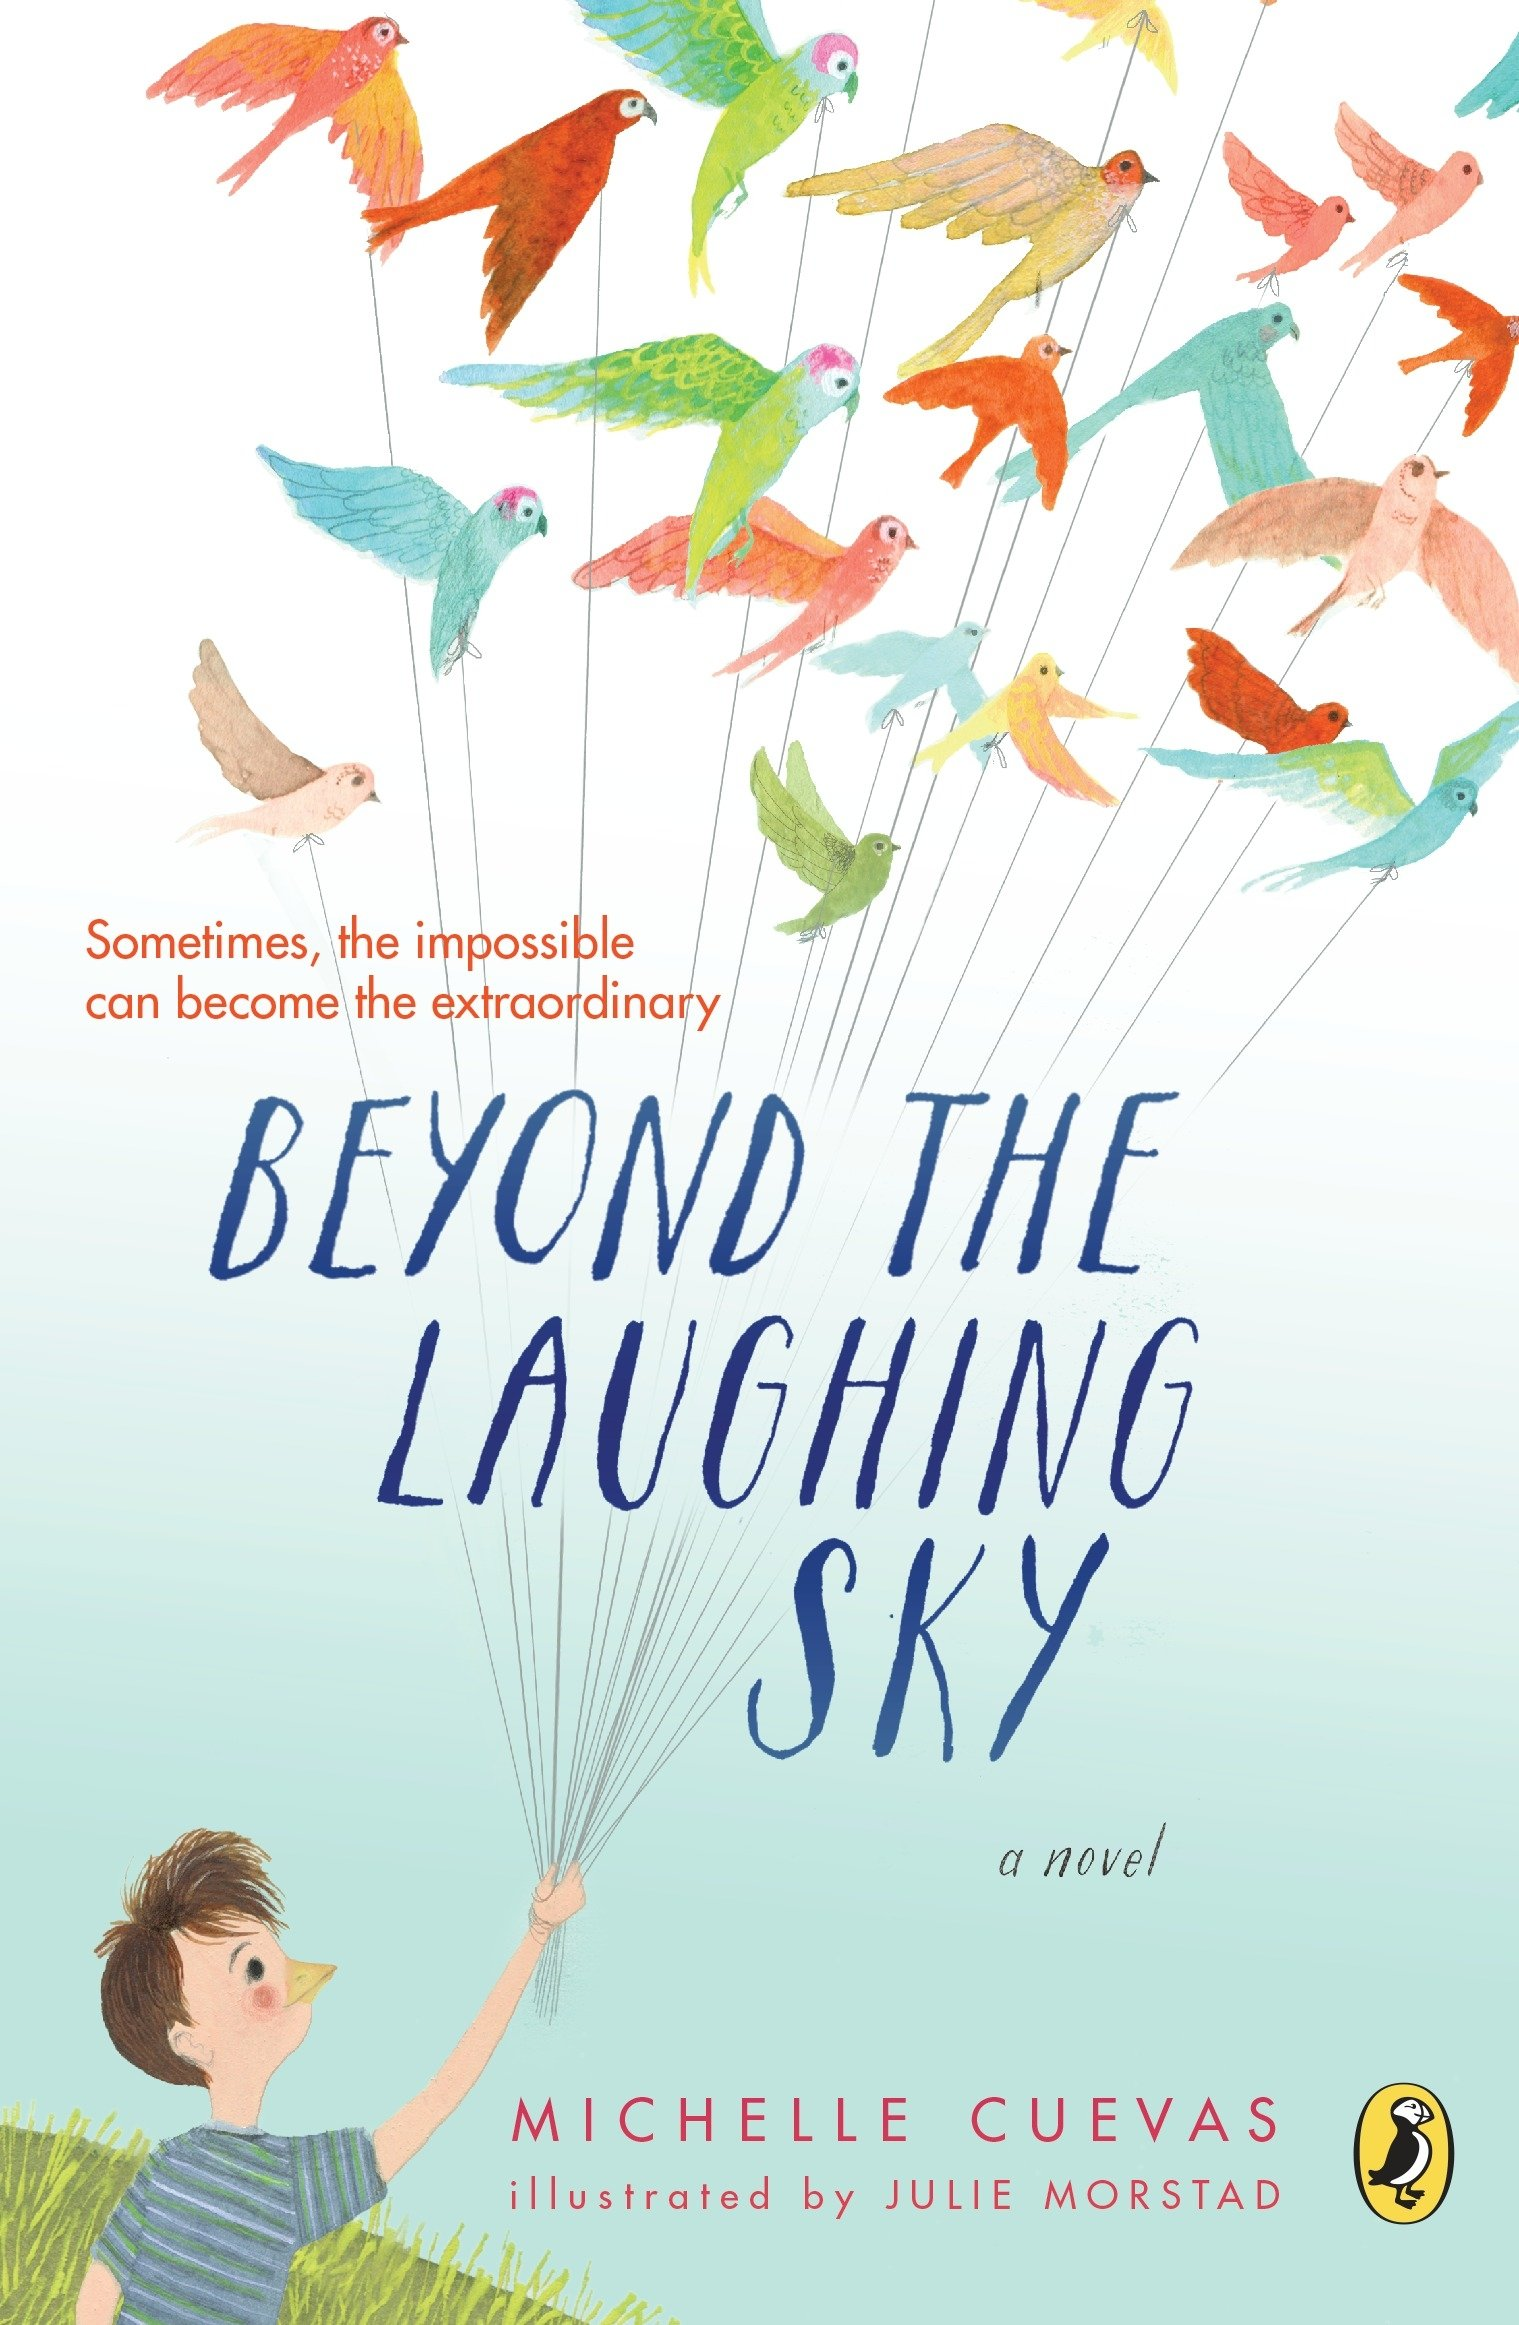 Beyond the laughing sky michelle cuevas julie morstad beyond the laughing sky michelle cuevas julie morstad 9780142423059 amazon books fandeluxe Gallery